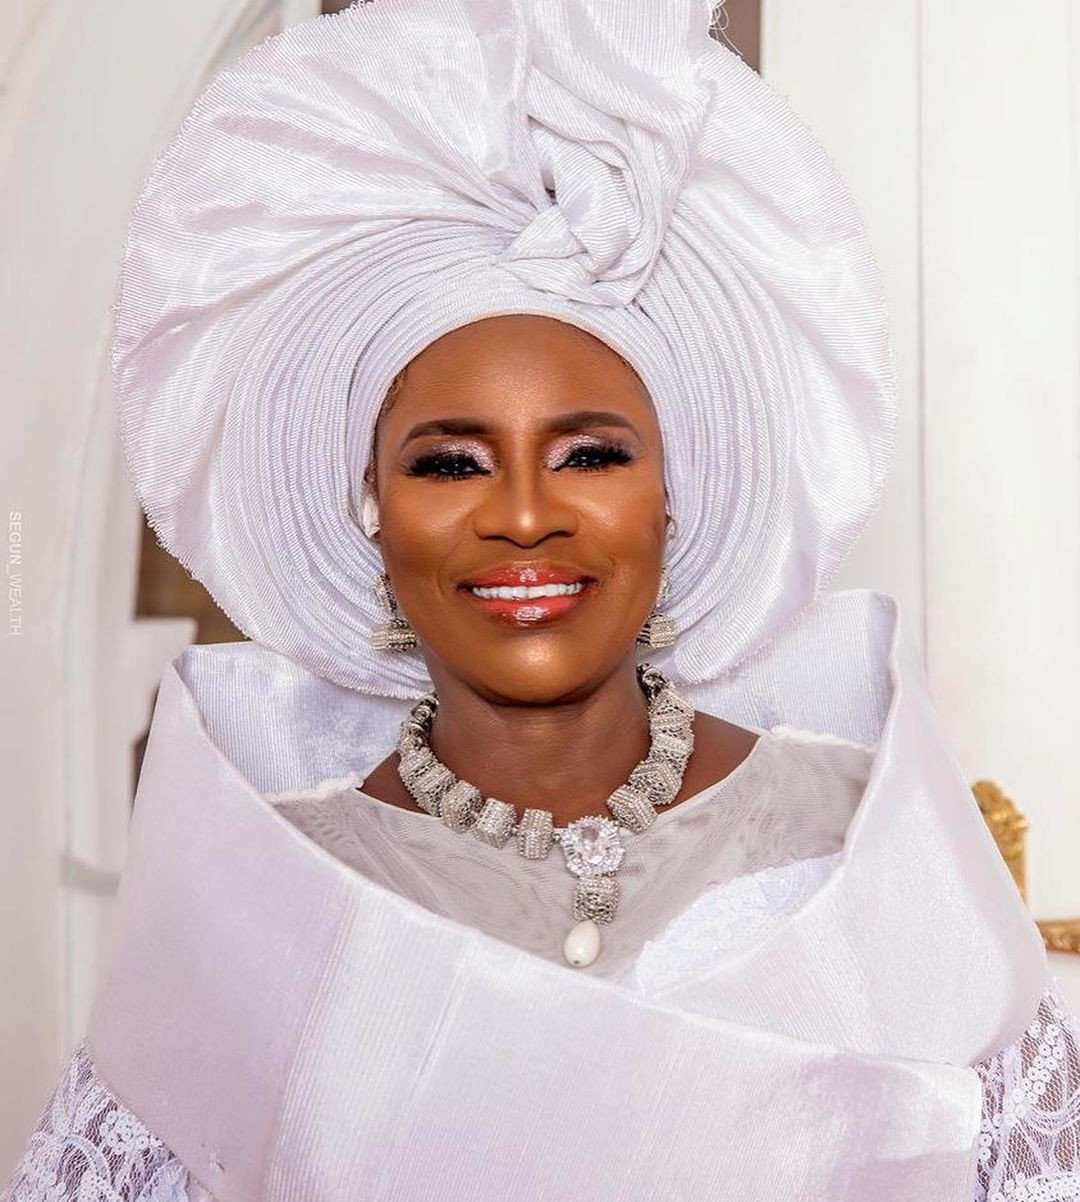 Actress, Iya Rainbow shares lovely photos as she turns 78 (Photos) 16